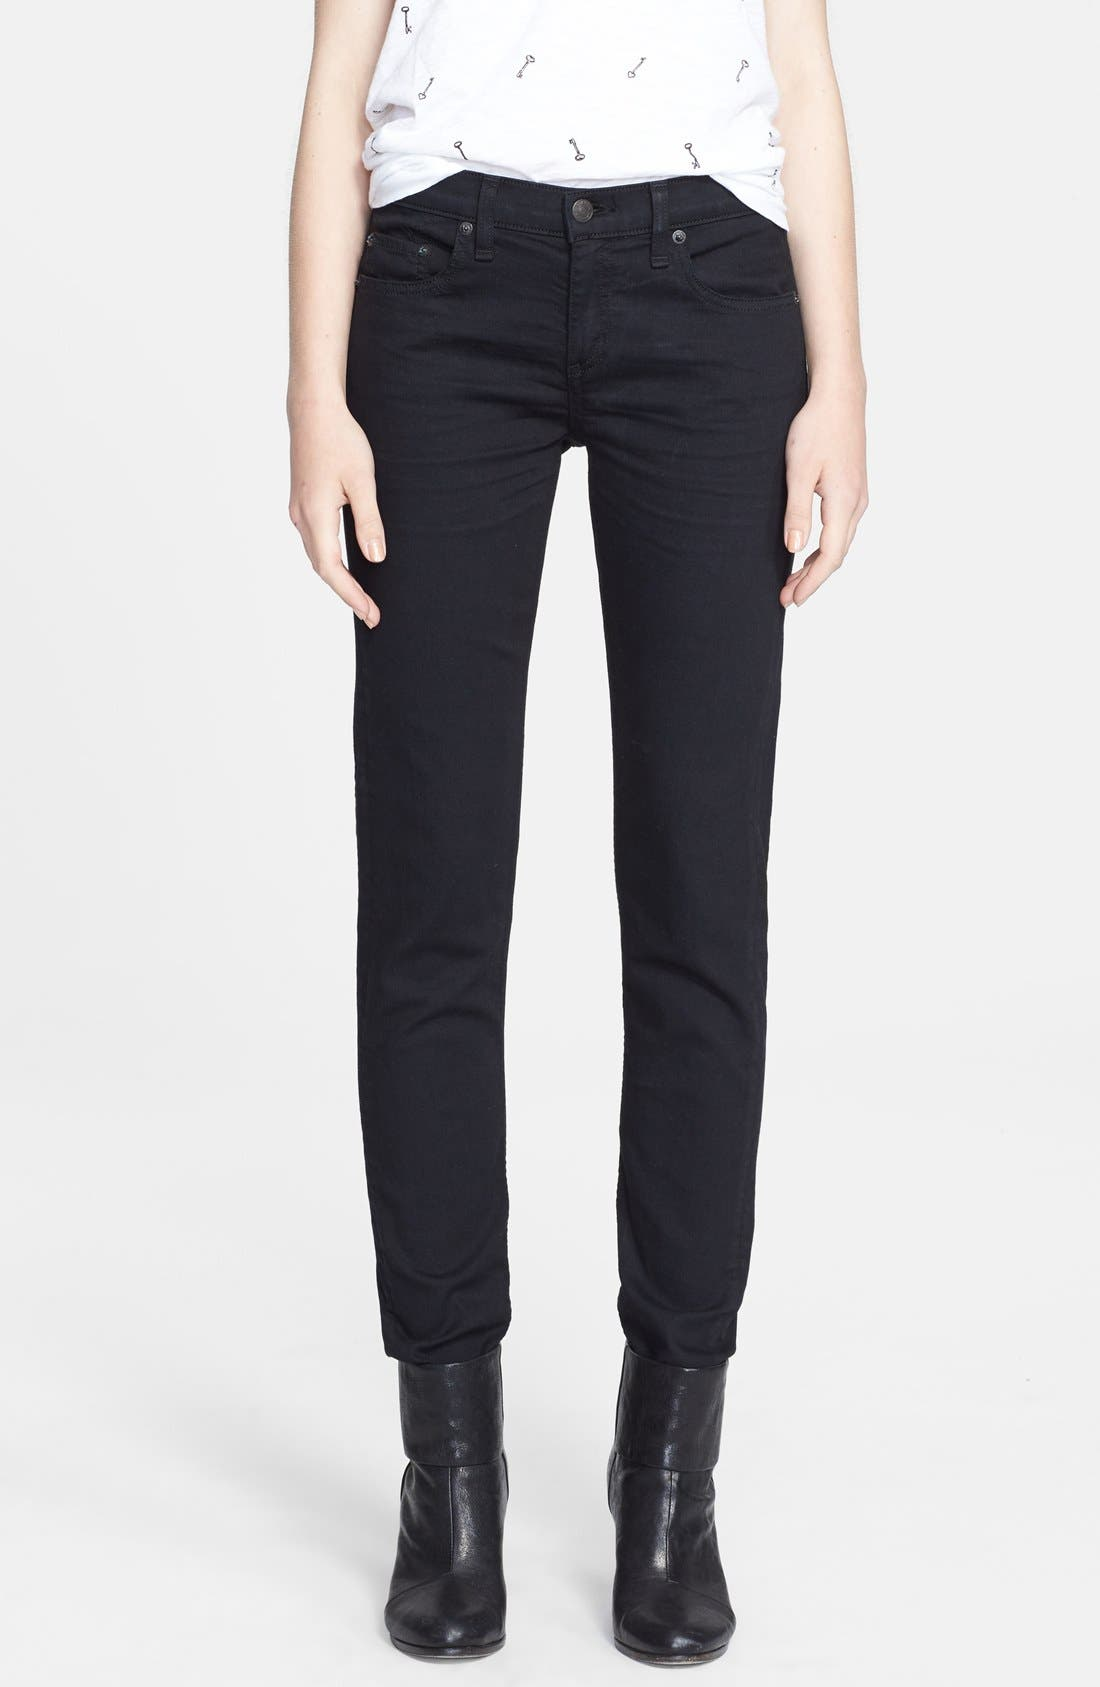 'The Dre' Skinny Jeans,                         Main,                         color,